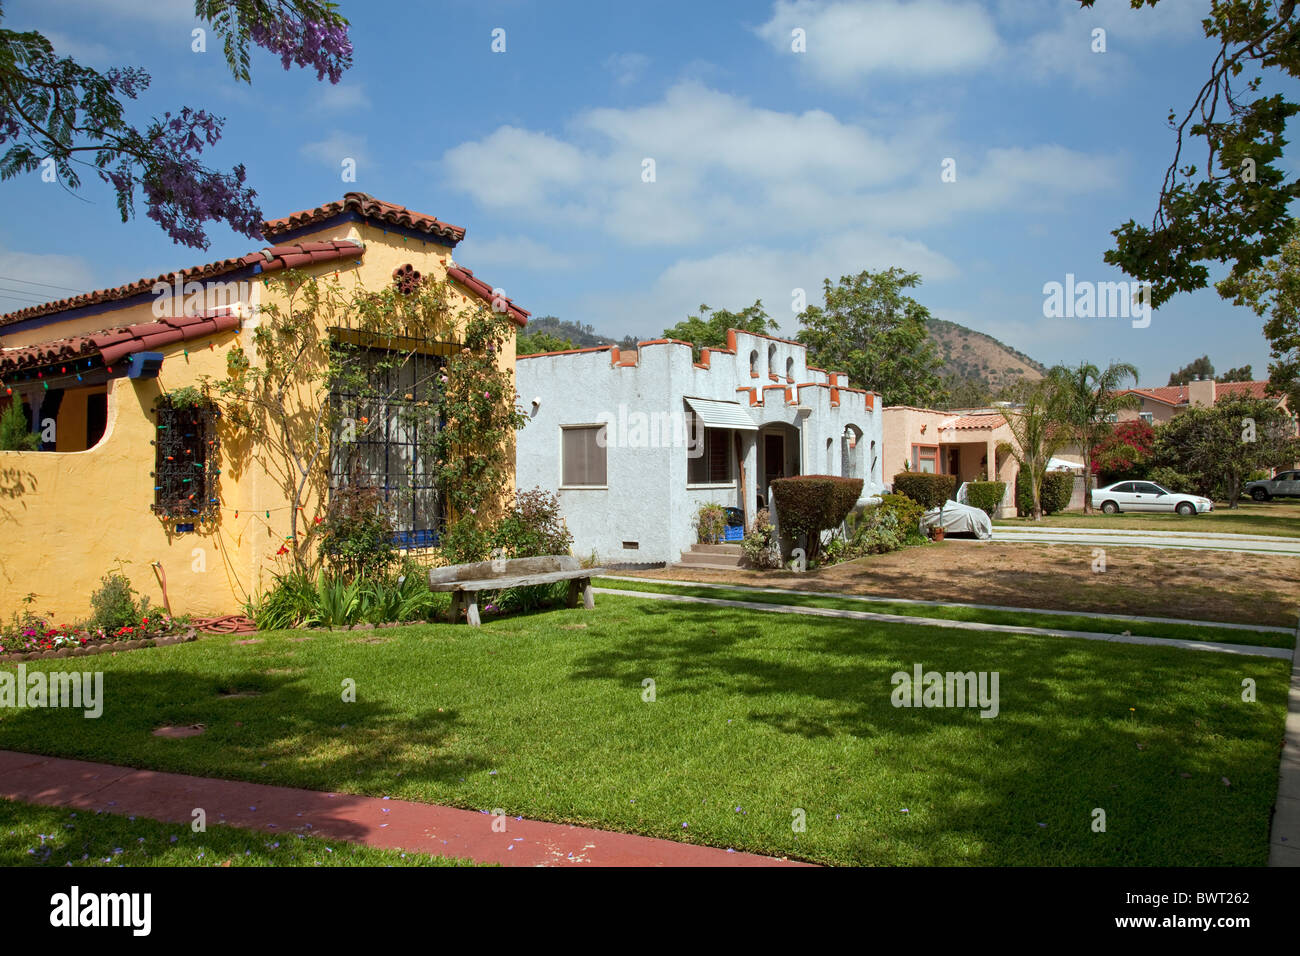 Atwater Village, Los Angeles, California, USA   Stock Image